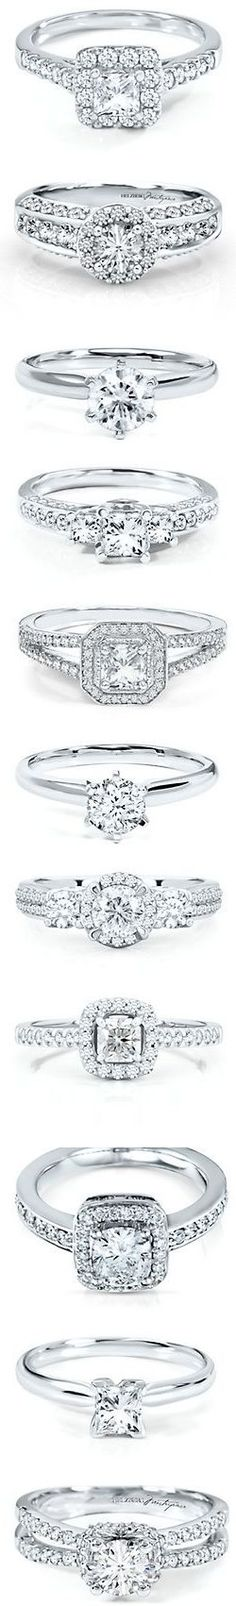 Love the solitary diamond rings! :)